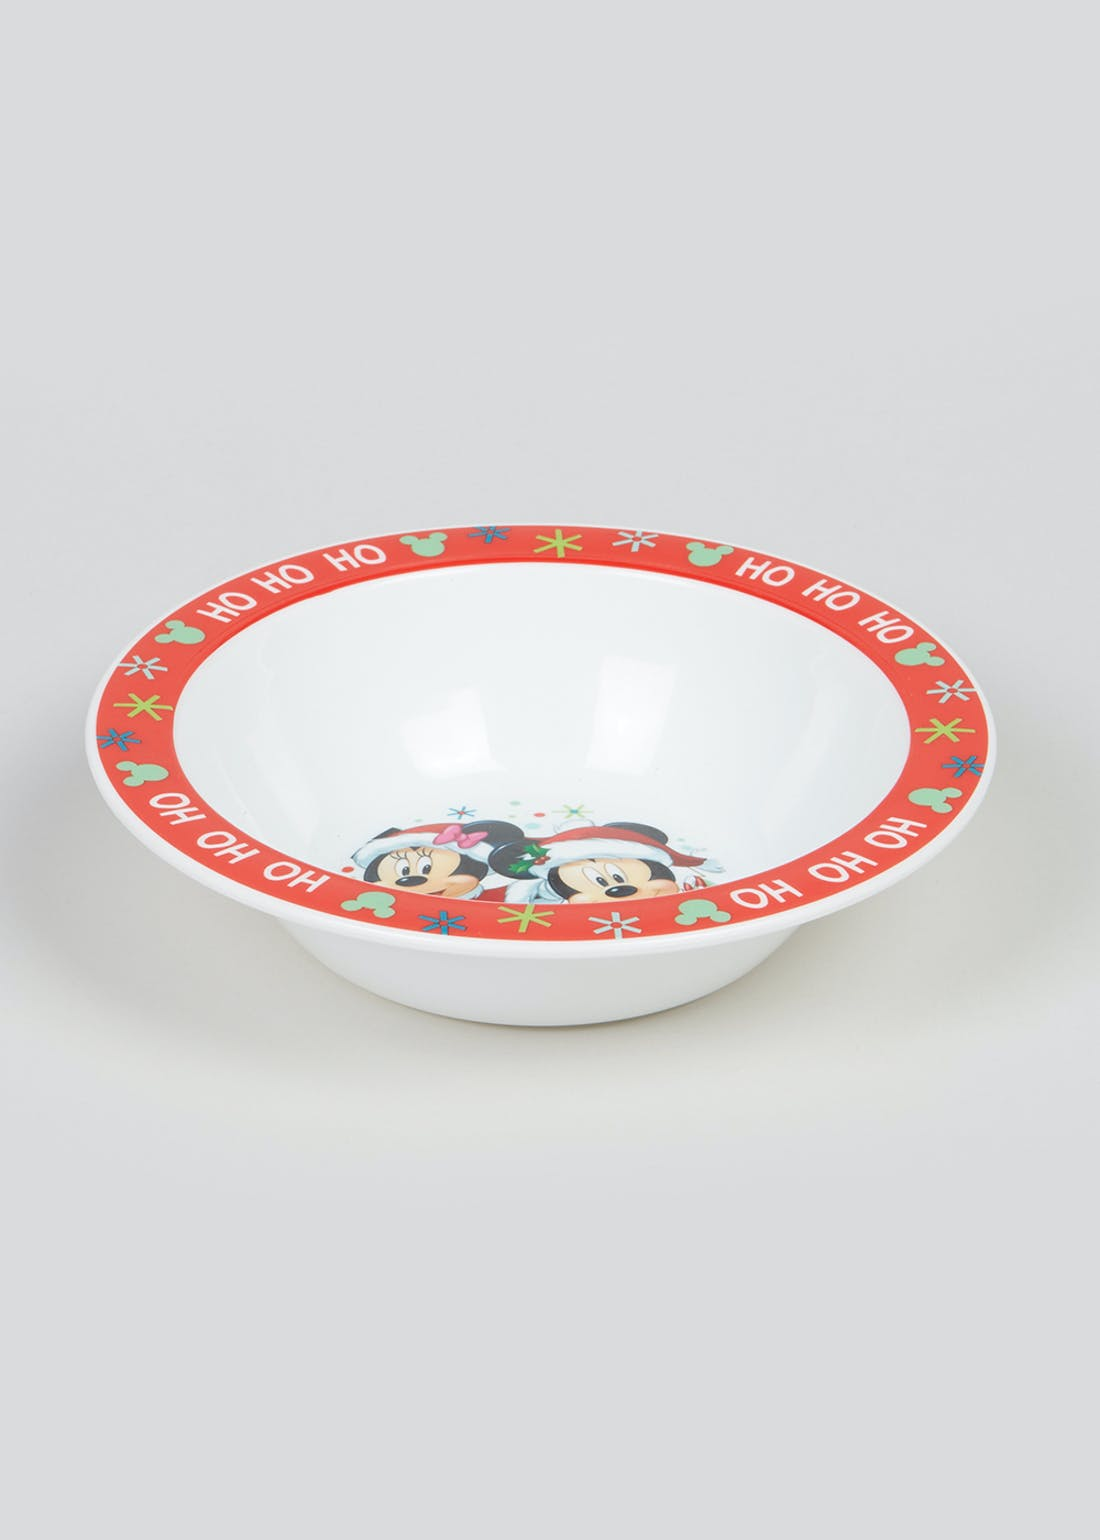 Kids Mickey & Minnie Christmas Bowl (16cm x 5cm)